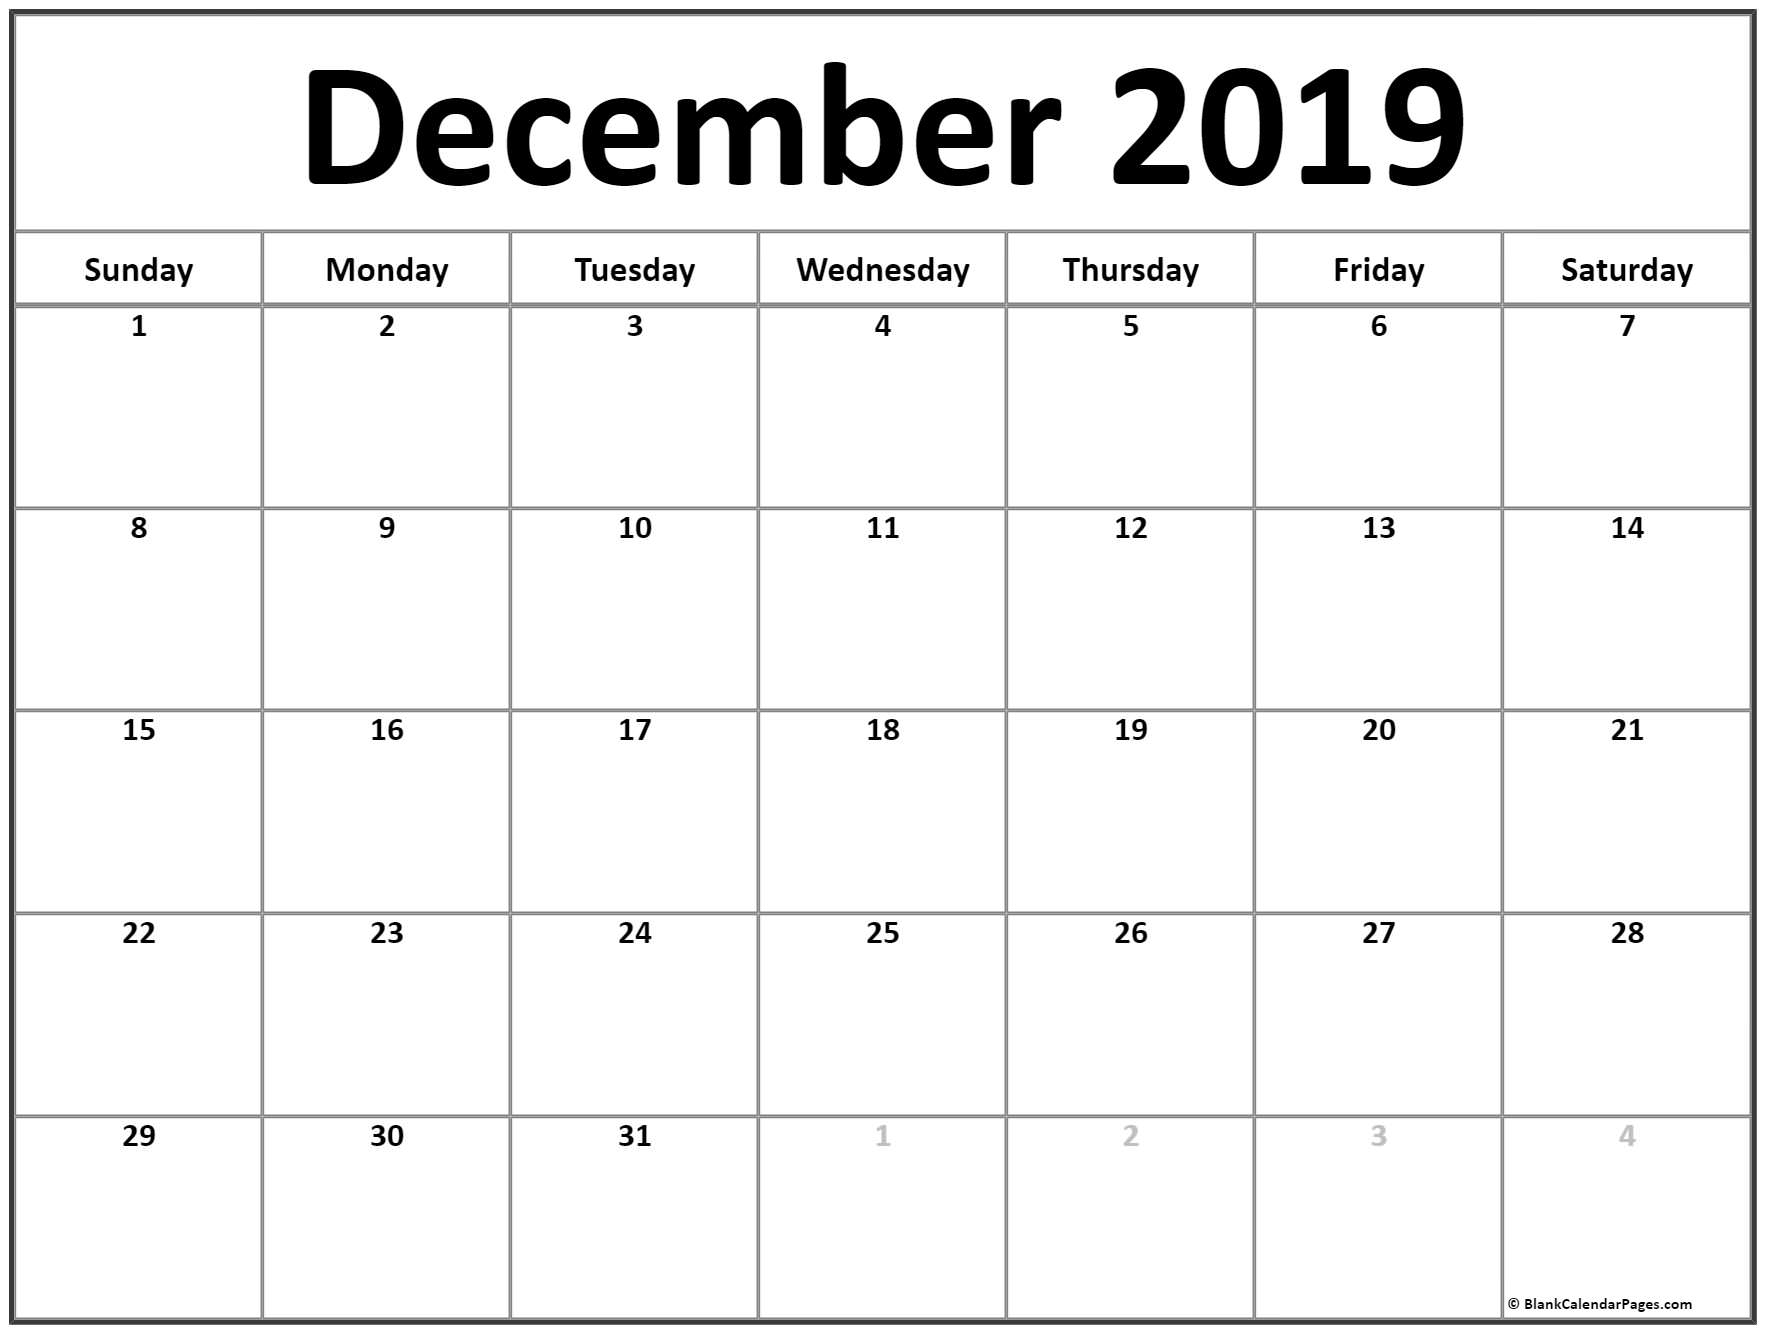 December 2019 Calendar | Free Printable Monthly Calendars within Printable Calendar With Space To Write